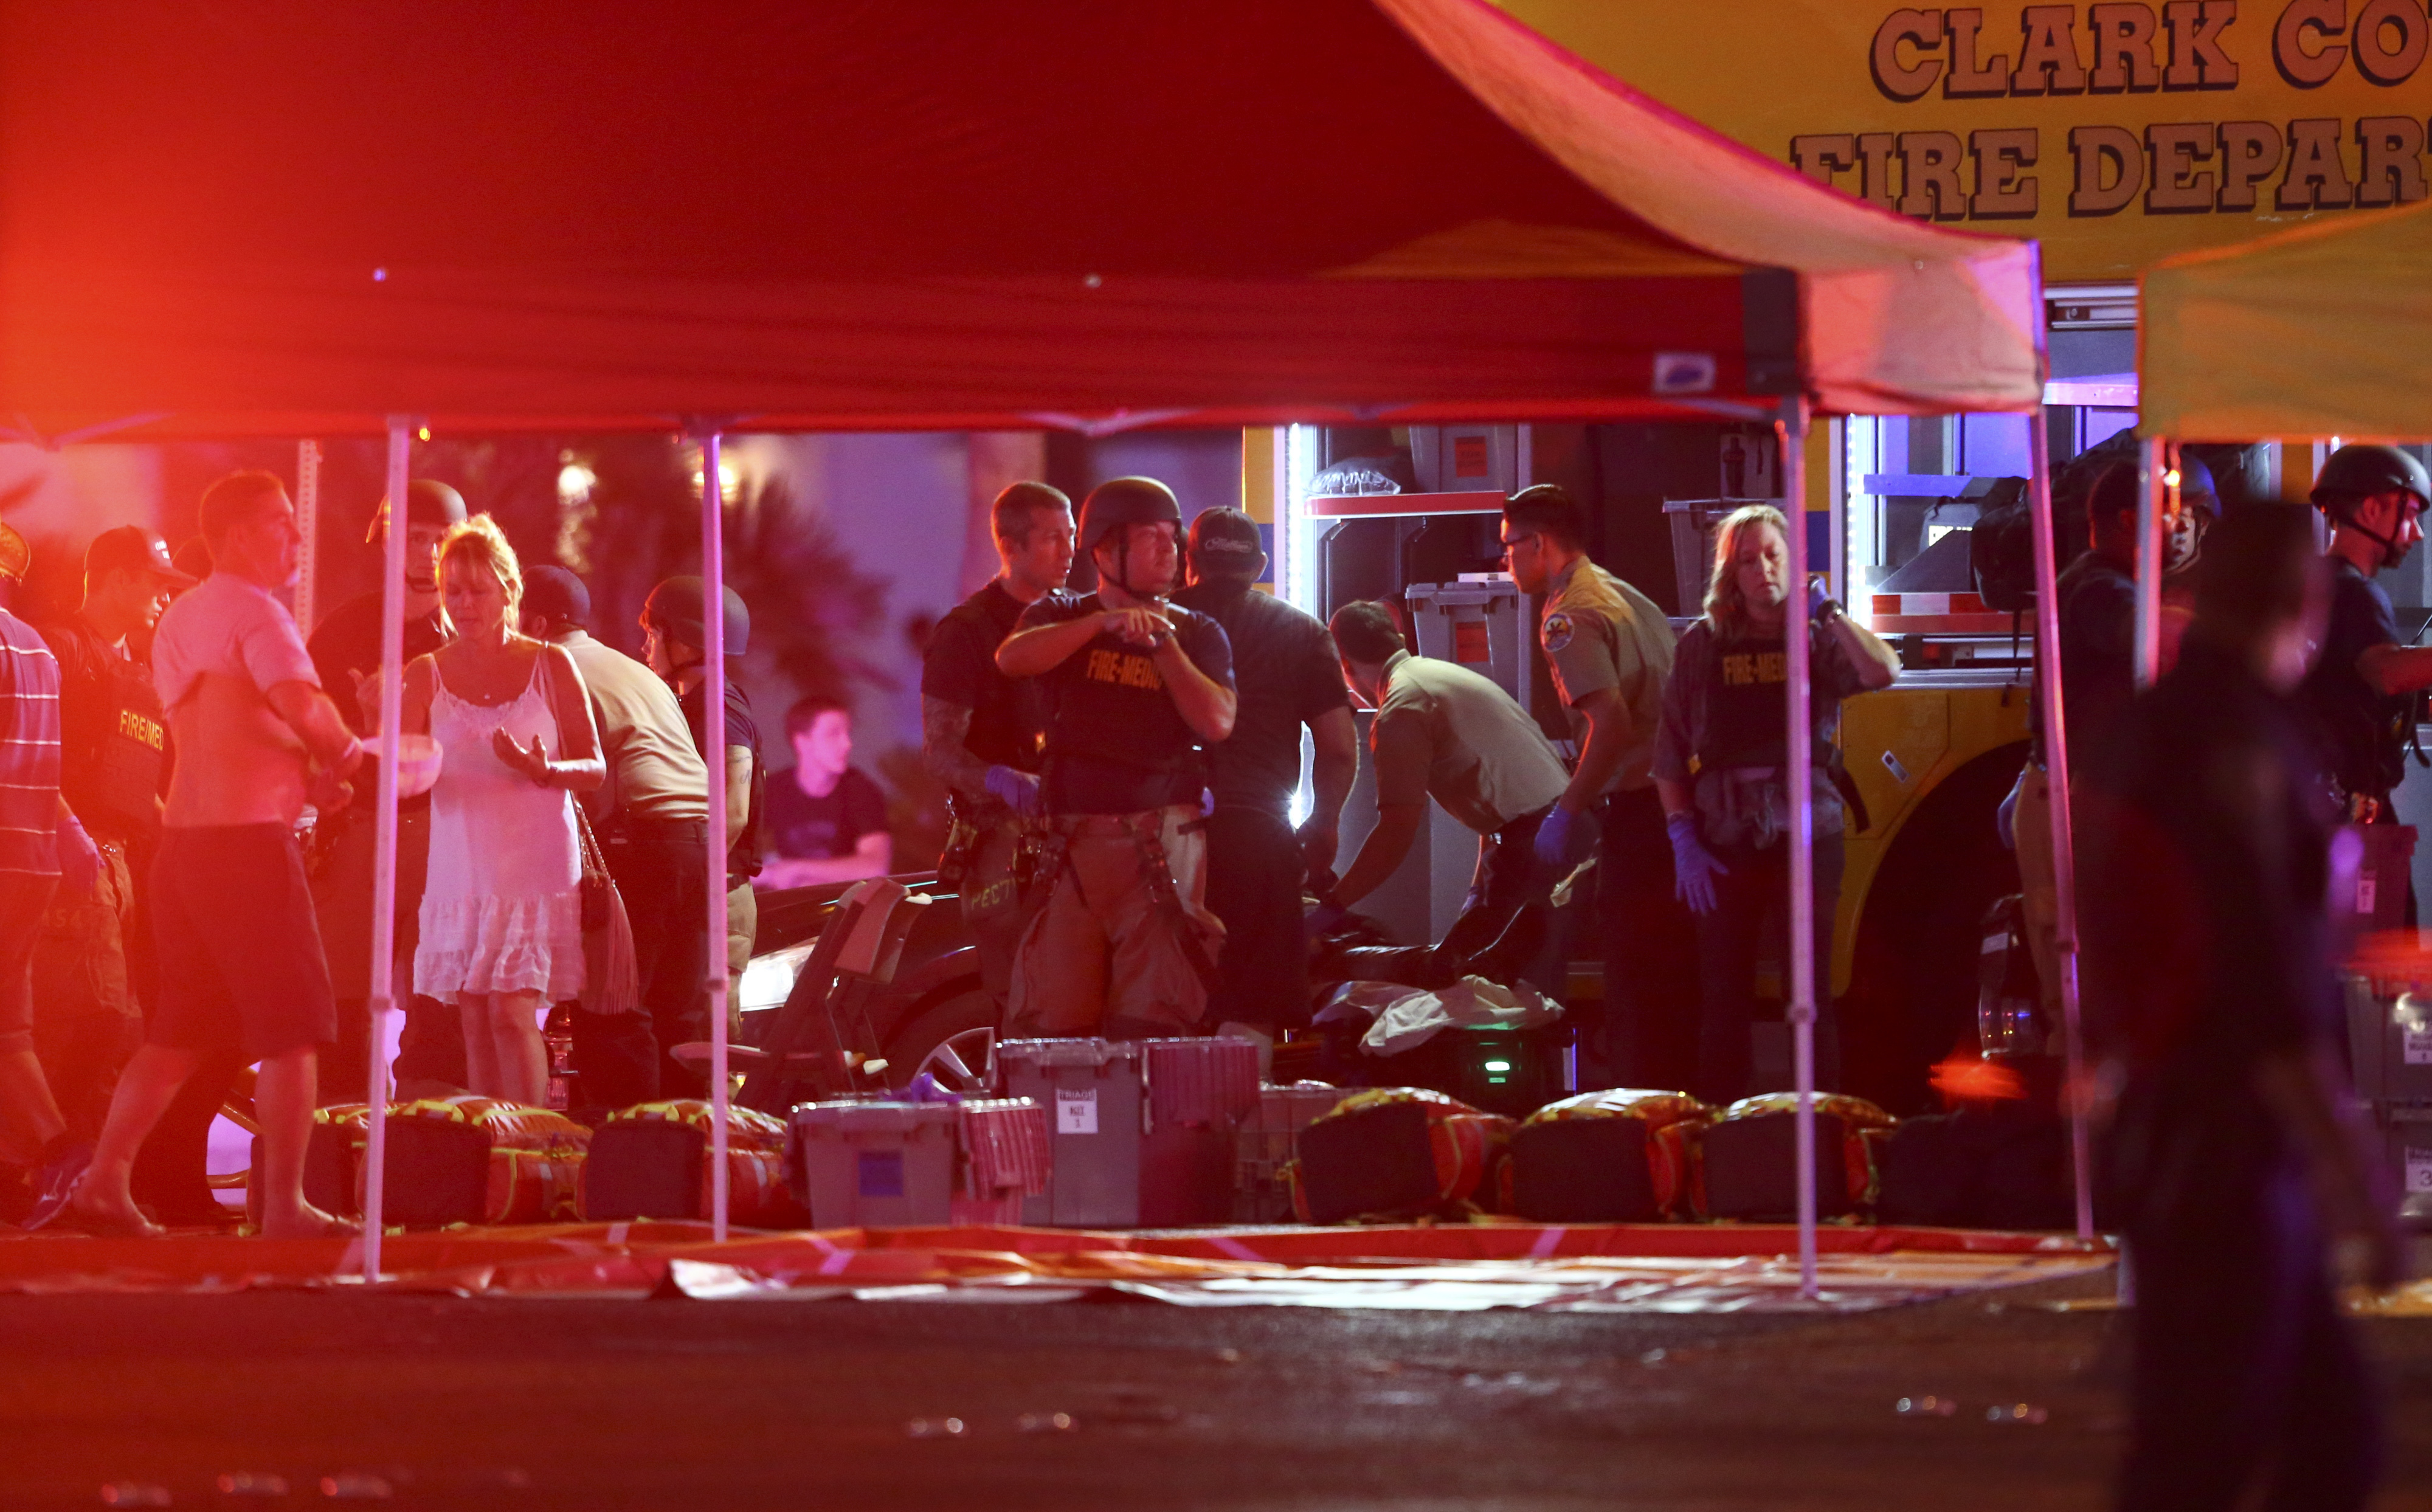 Medics treat the wounded as Las Vegas police respond during an active shooter situation on the Las Vegas Stirp in Las Vegas Sunday, Oct. 1, 2017. Multiple victims were being transported to hospitals after a shooting late Sunday at a music festival on the Las Vegas Strip. (Chase Stevens/Las Vegas Review-Journal via AP)